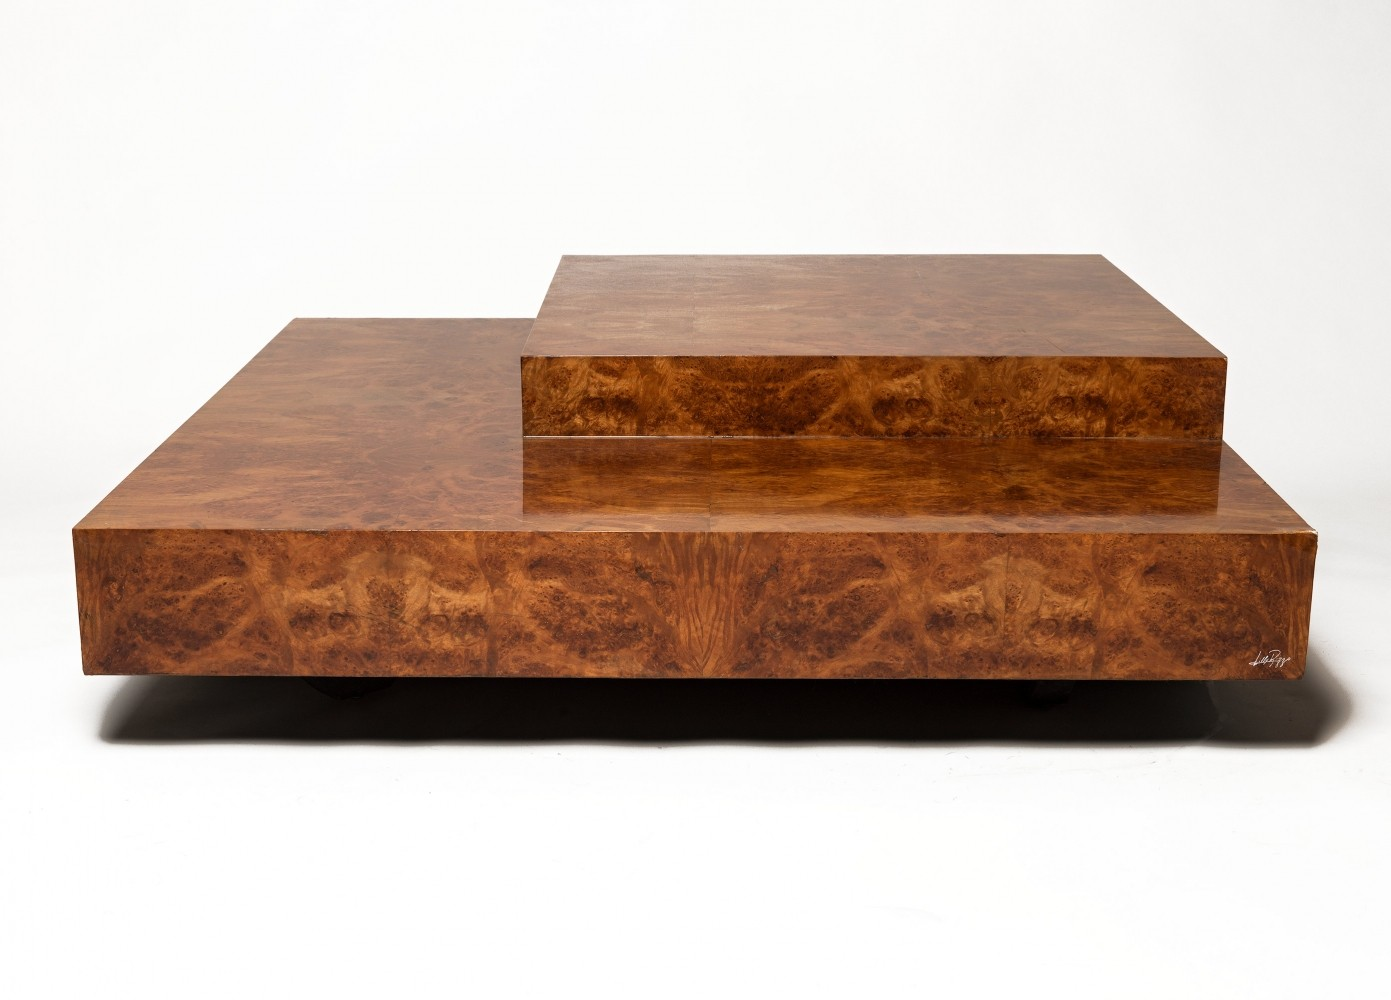 Willy rizzo coffee table 1960s 67668 for Mobili willy rizzo